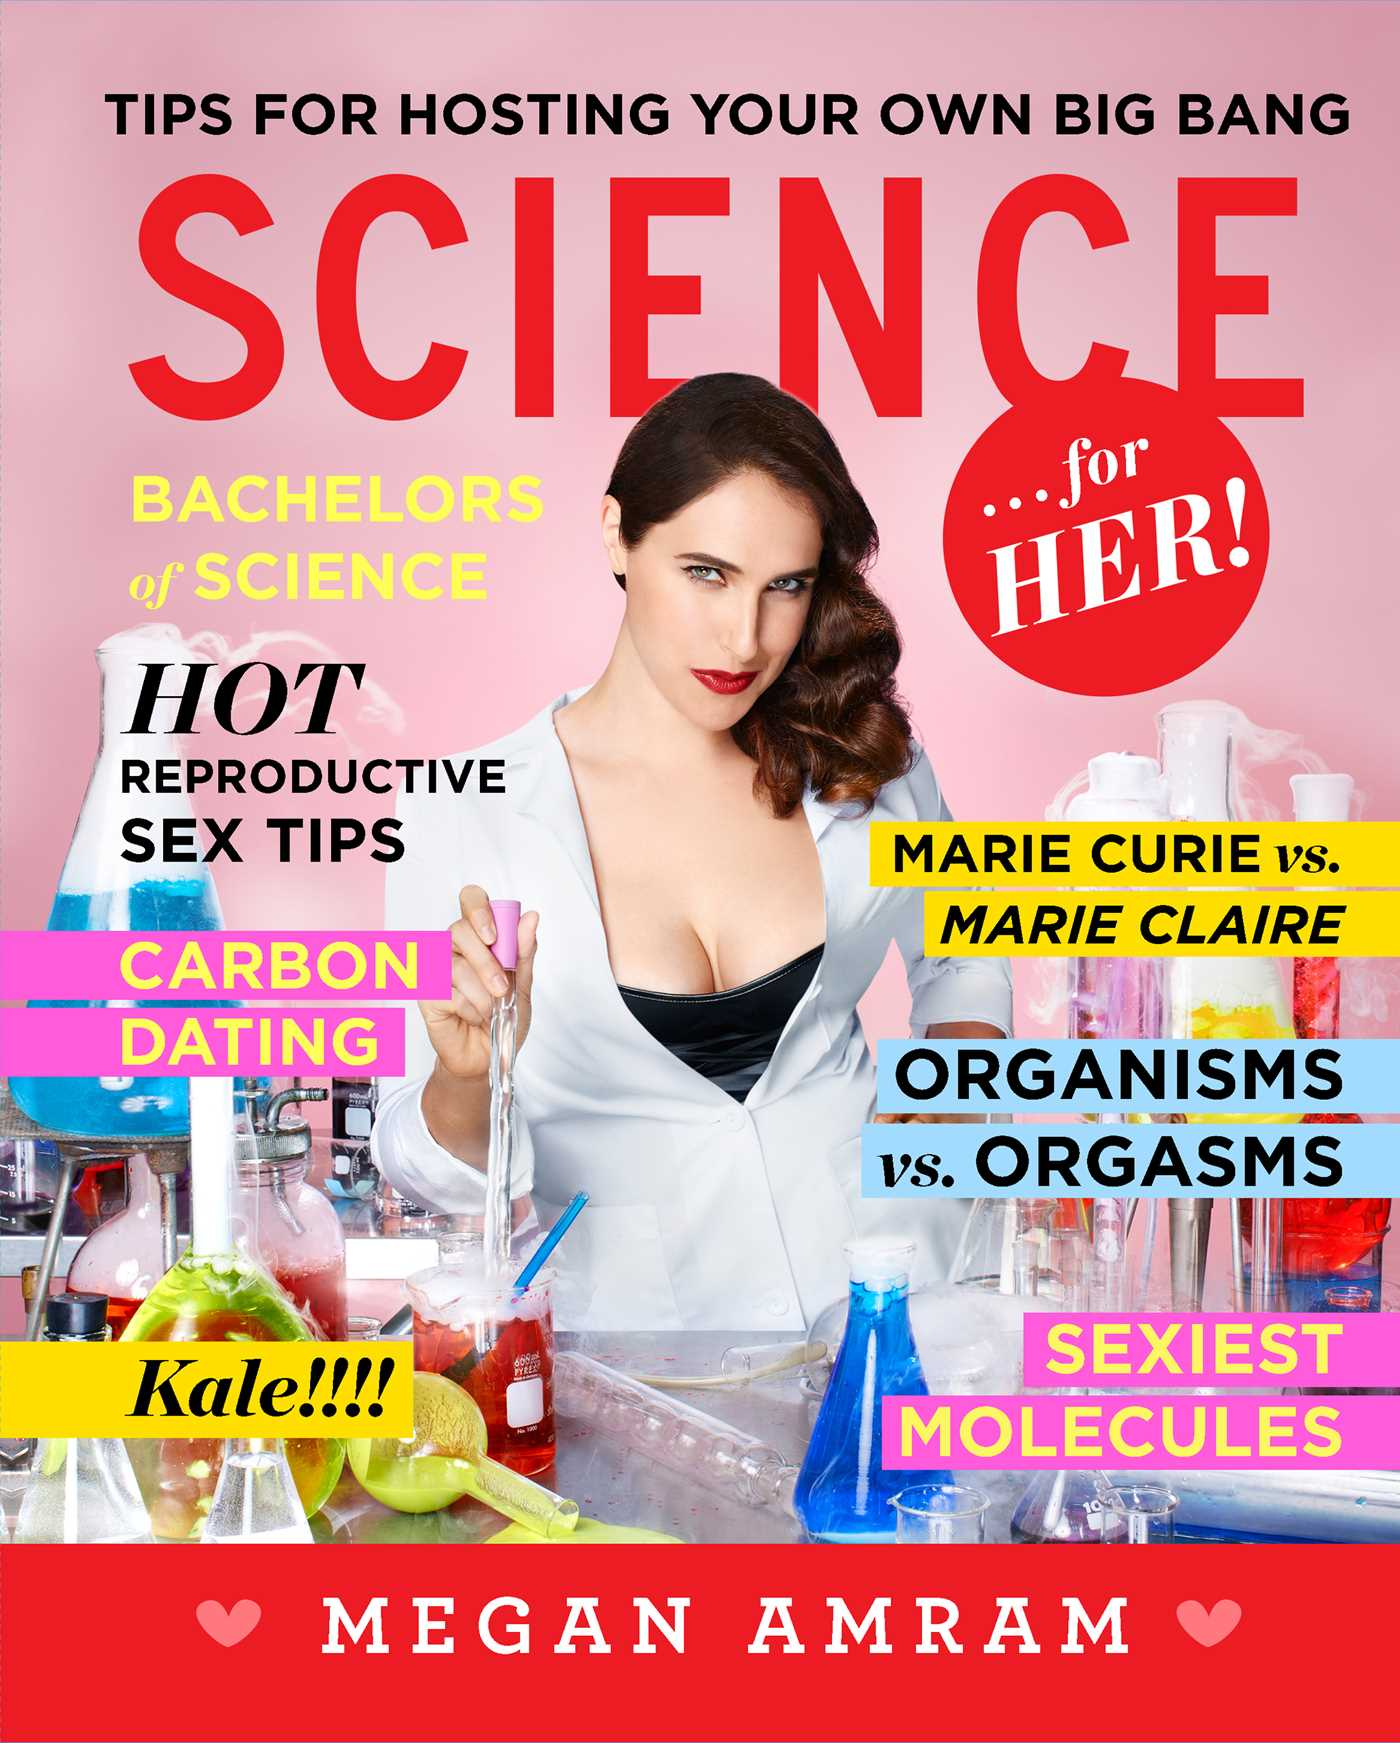 Science-for-her-9781476757889_hr